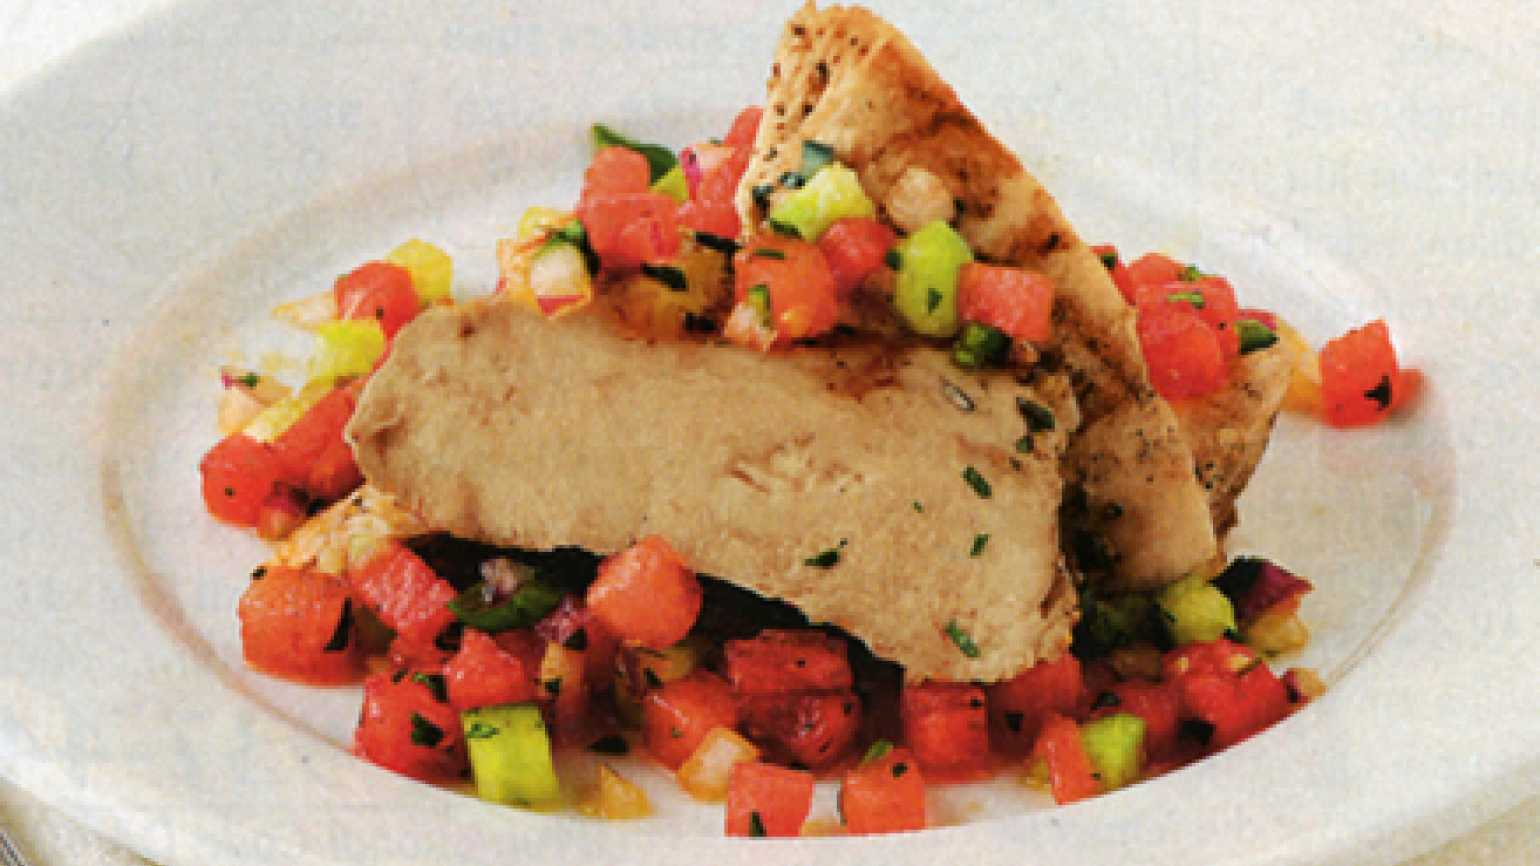 Dinner recipes: Chicken and Watermelon Dish